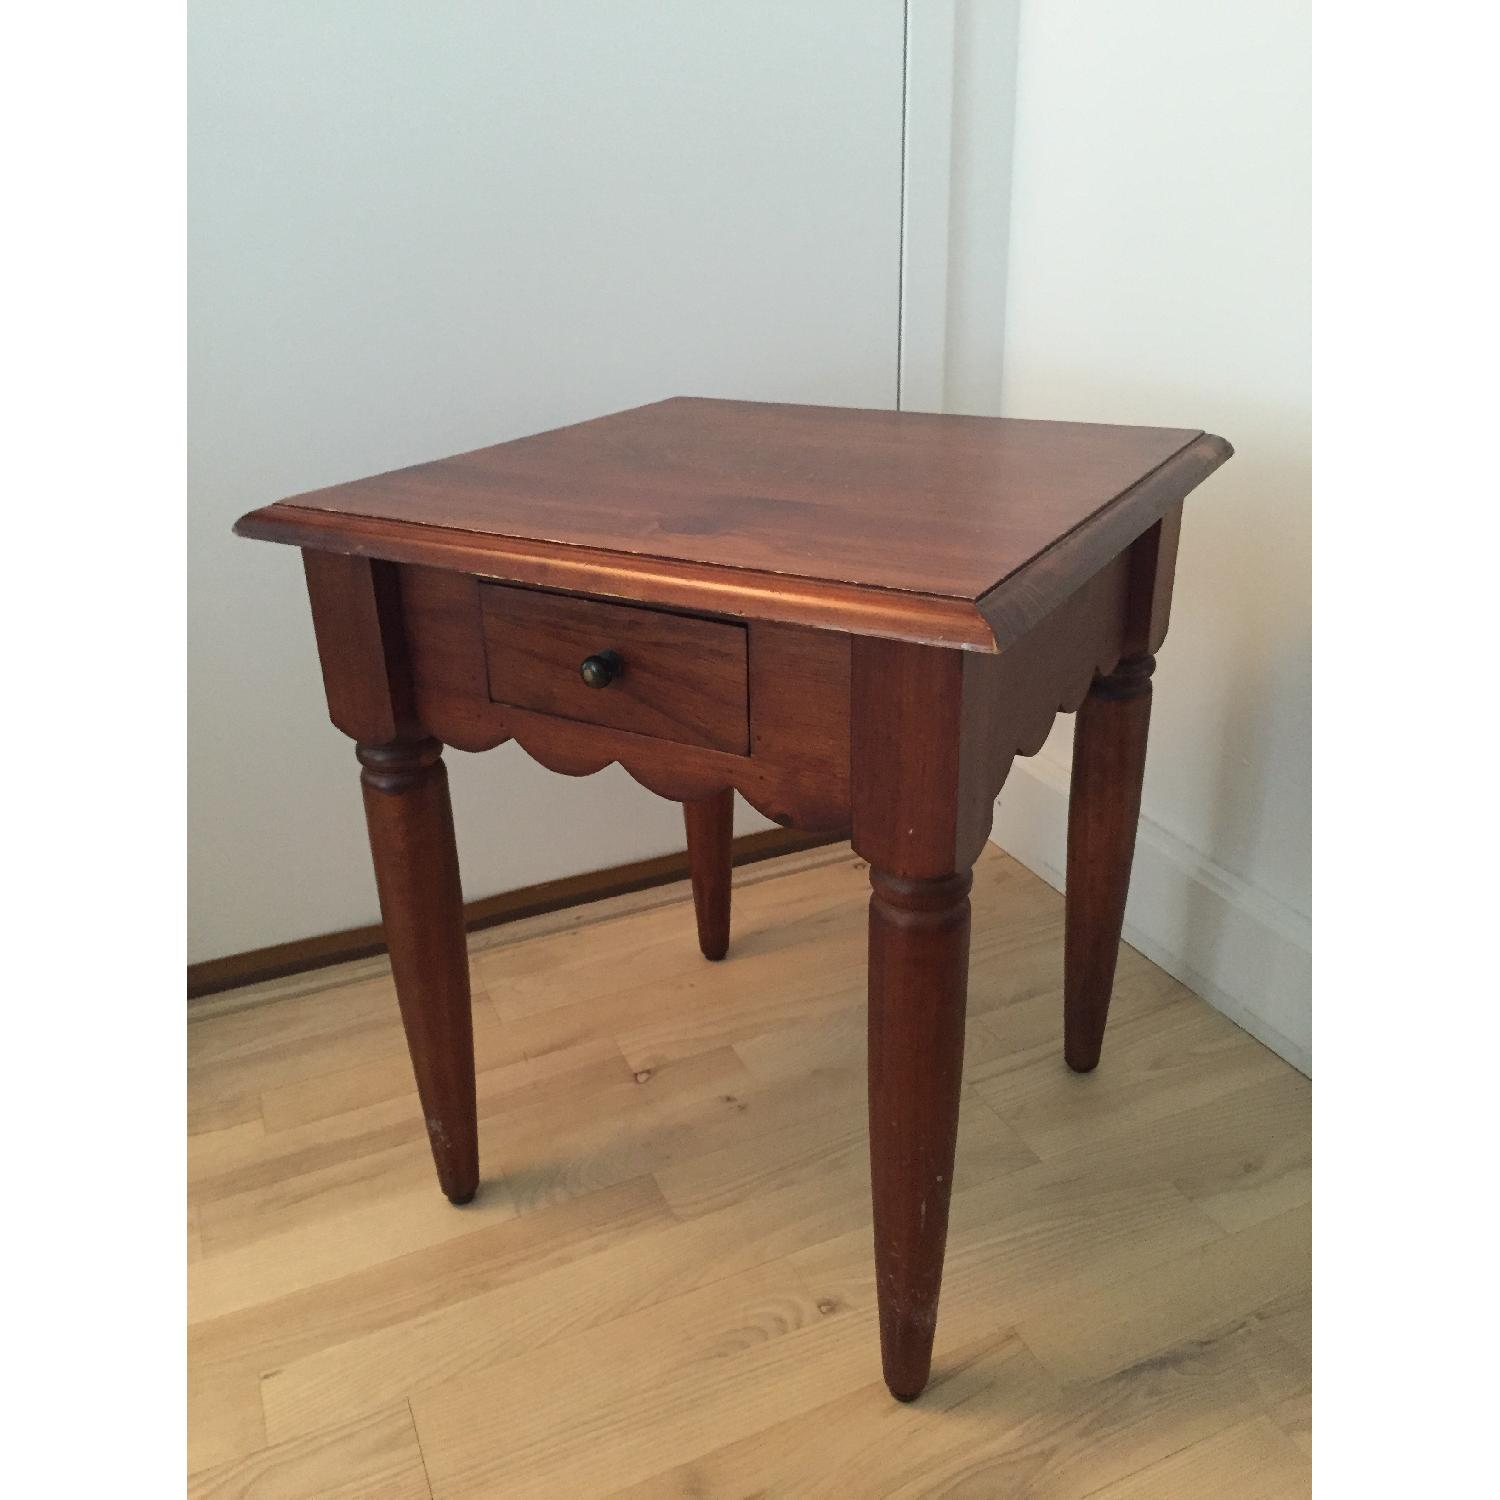 Pier 1 Wood Side Table-6